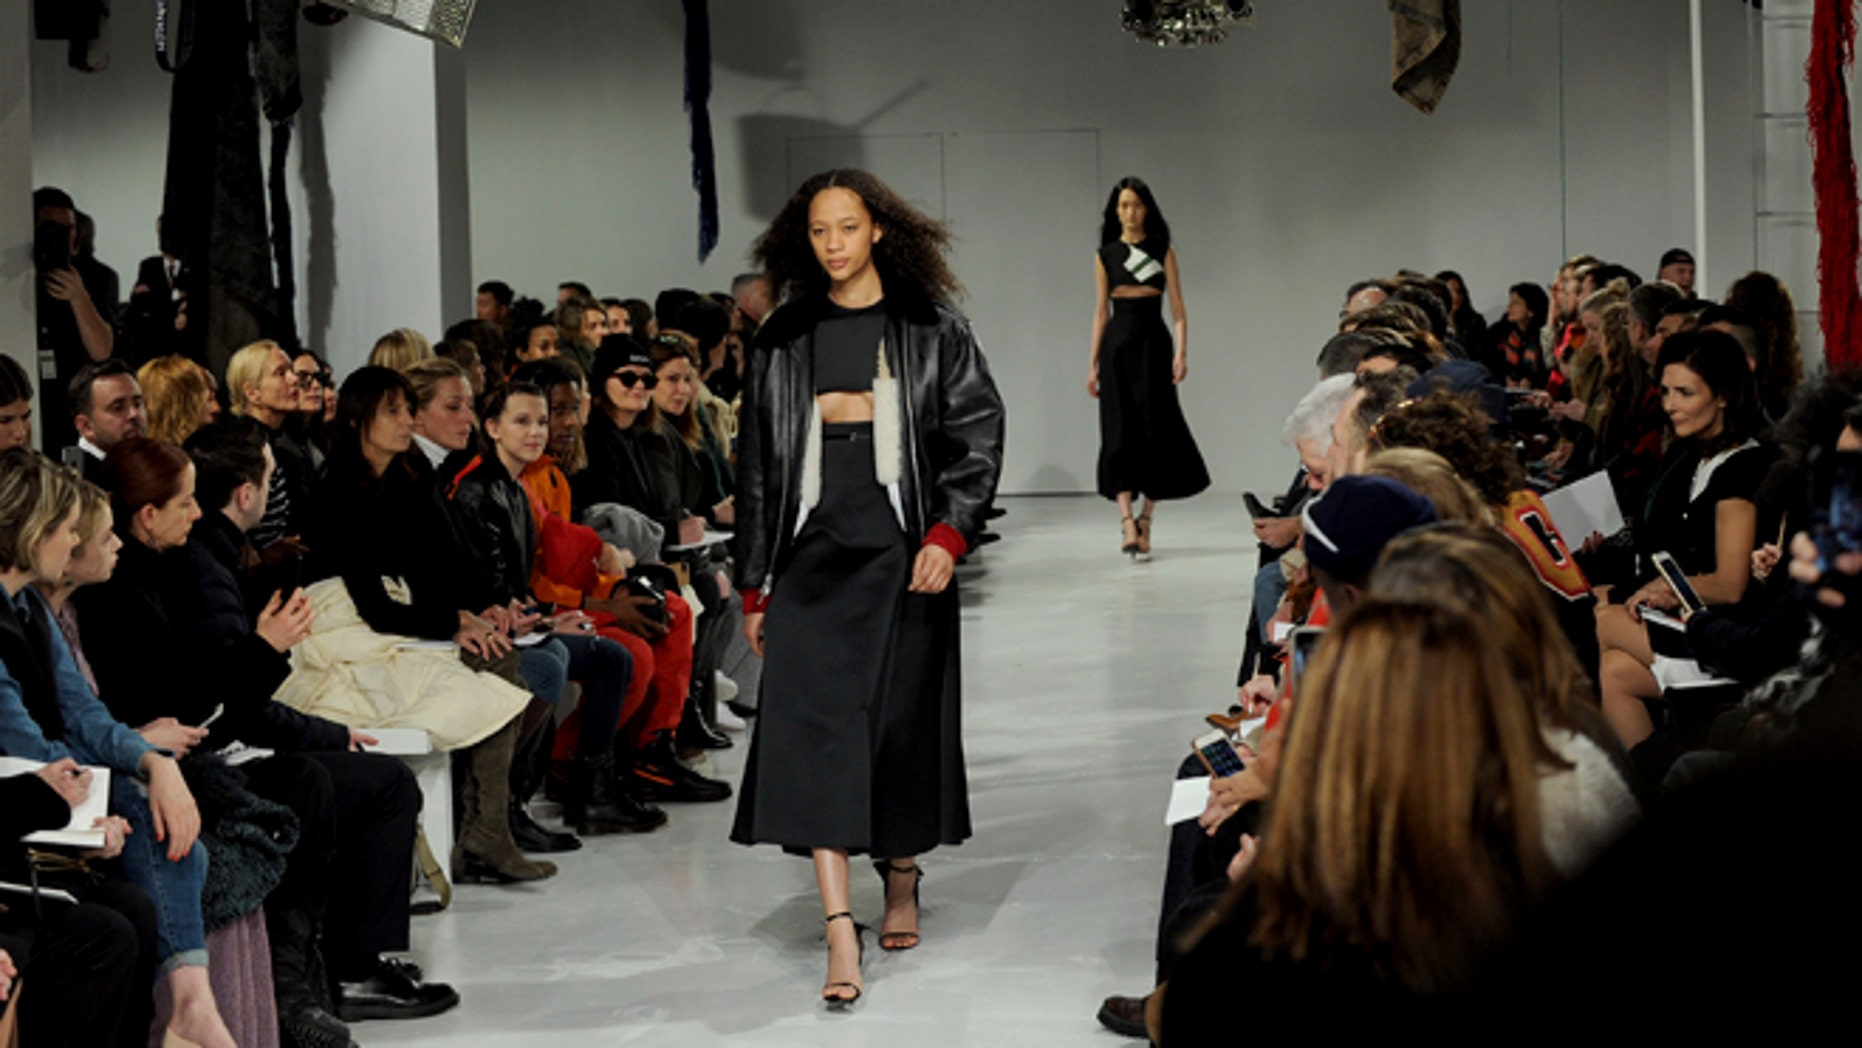 The Calvin Klein fashion show at NY Fashion Week delivered a political message.